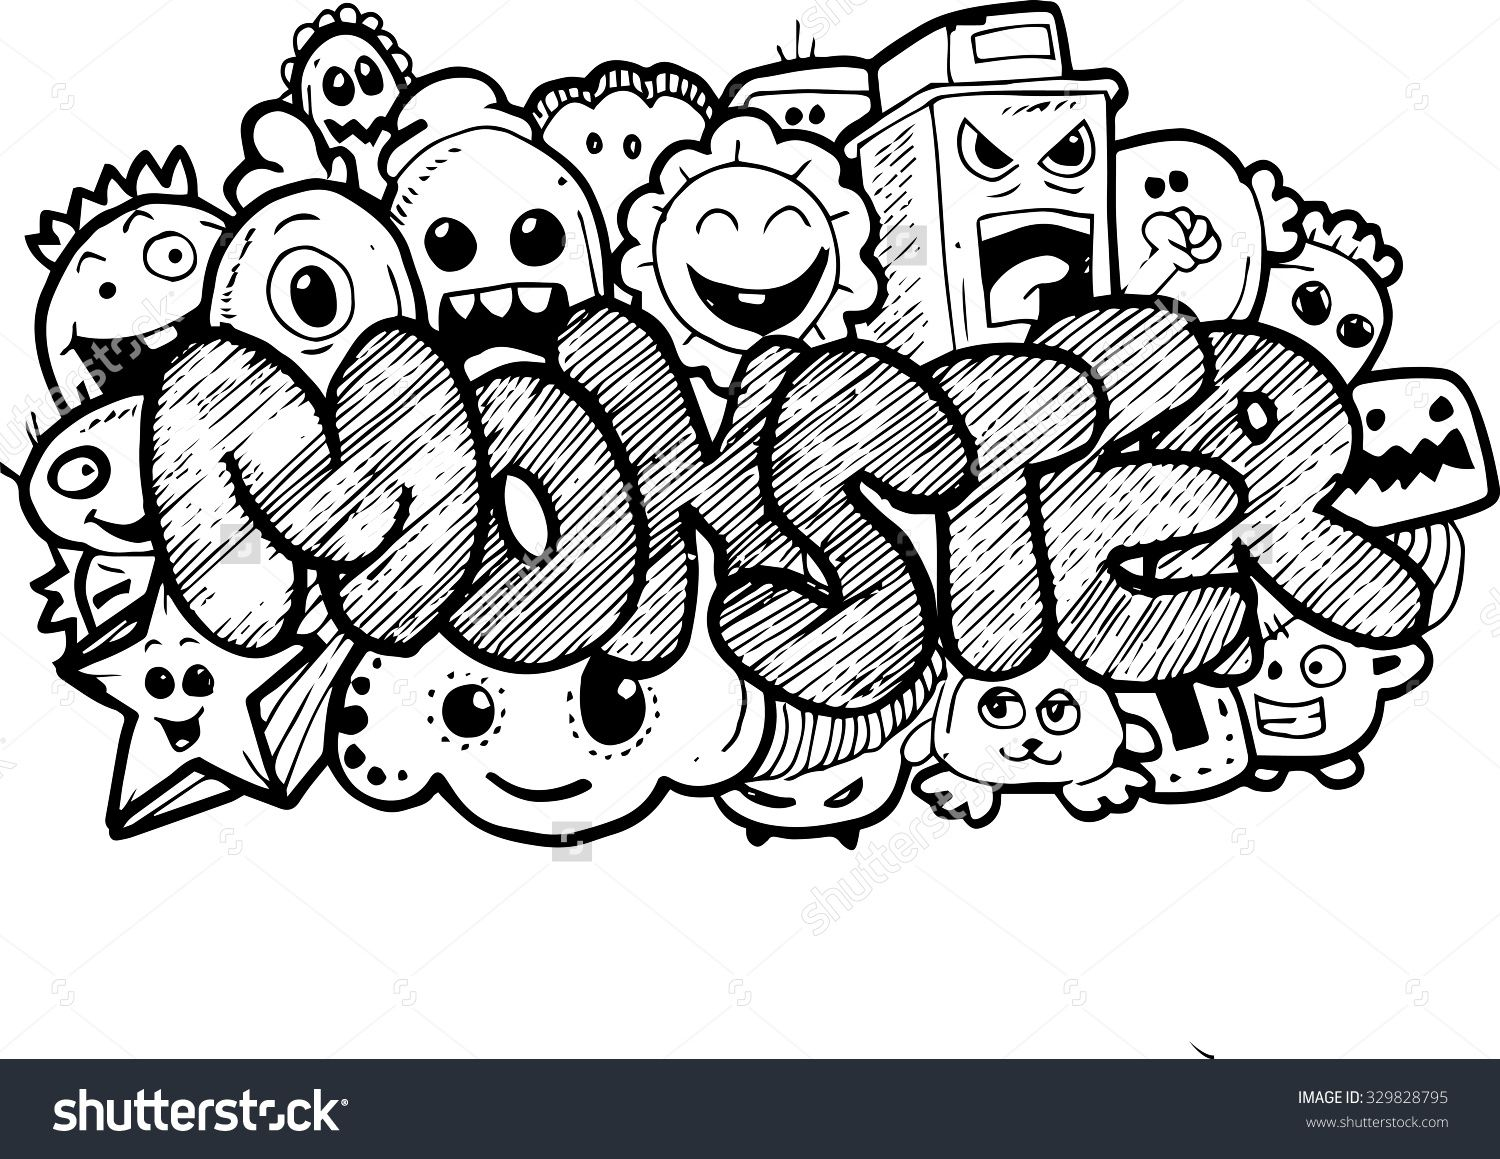 Monster cartoon handdrawn doodle stock illustration for How to doodle names